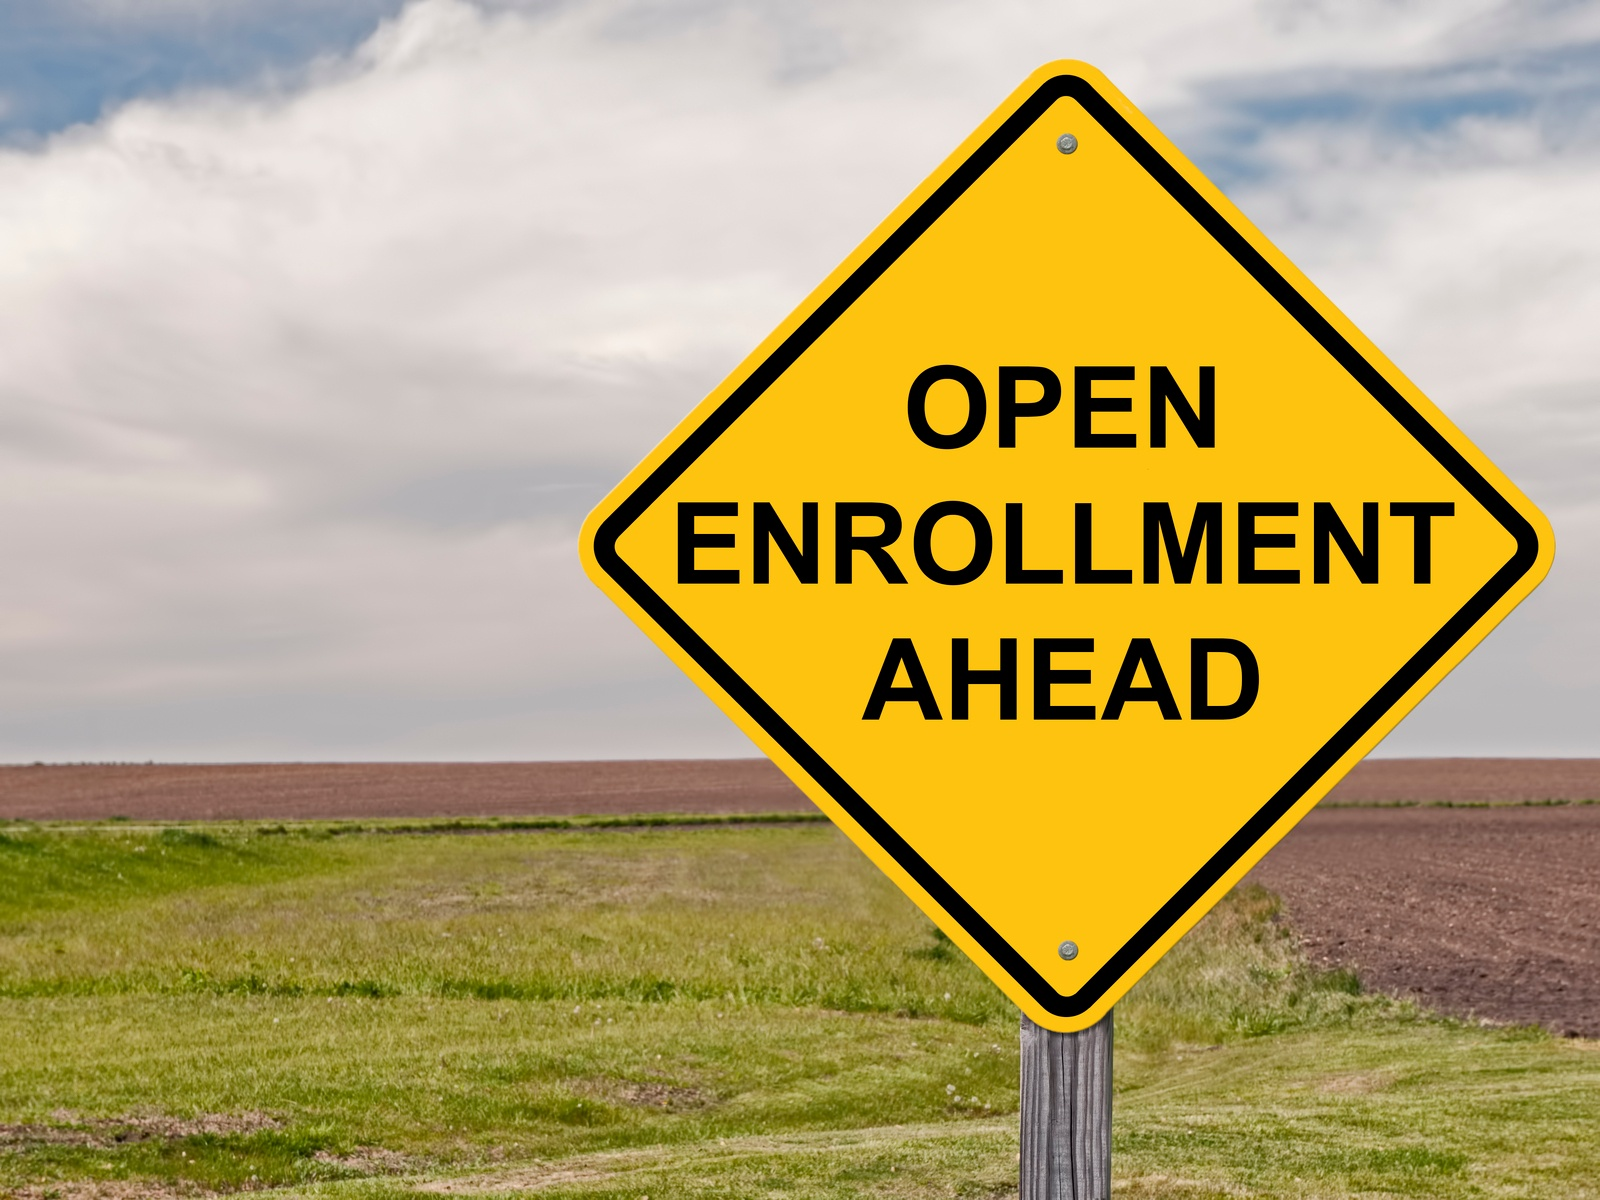 4 Ways to Spice Up Employee Benefits Open Enrollment Meetings